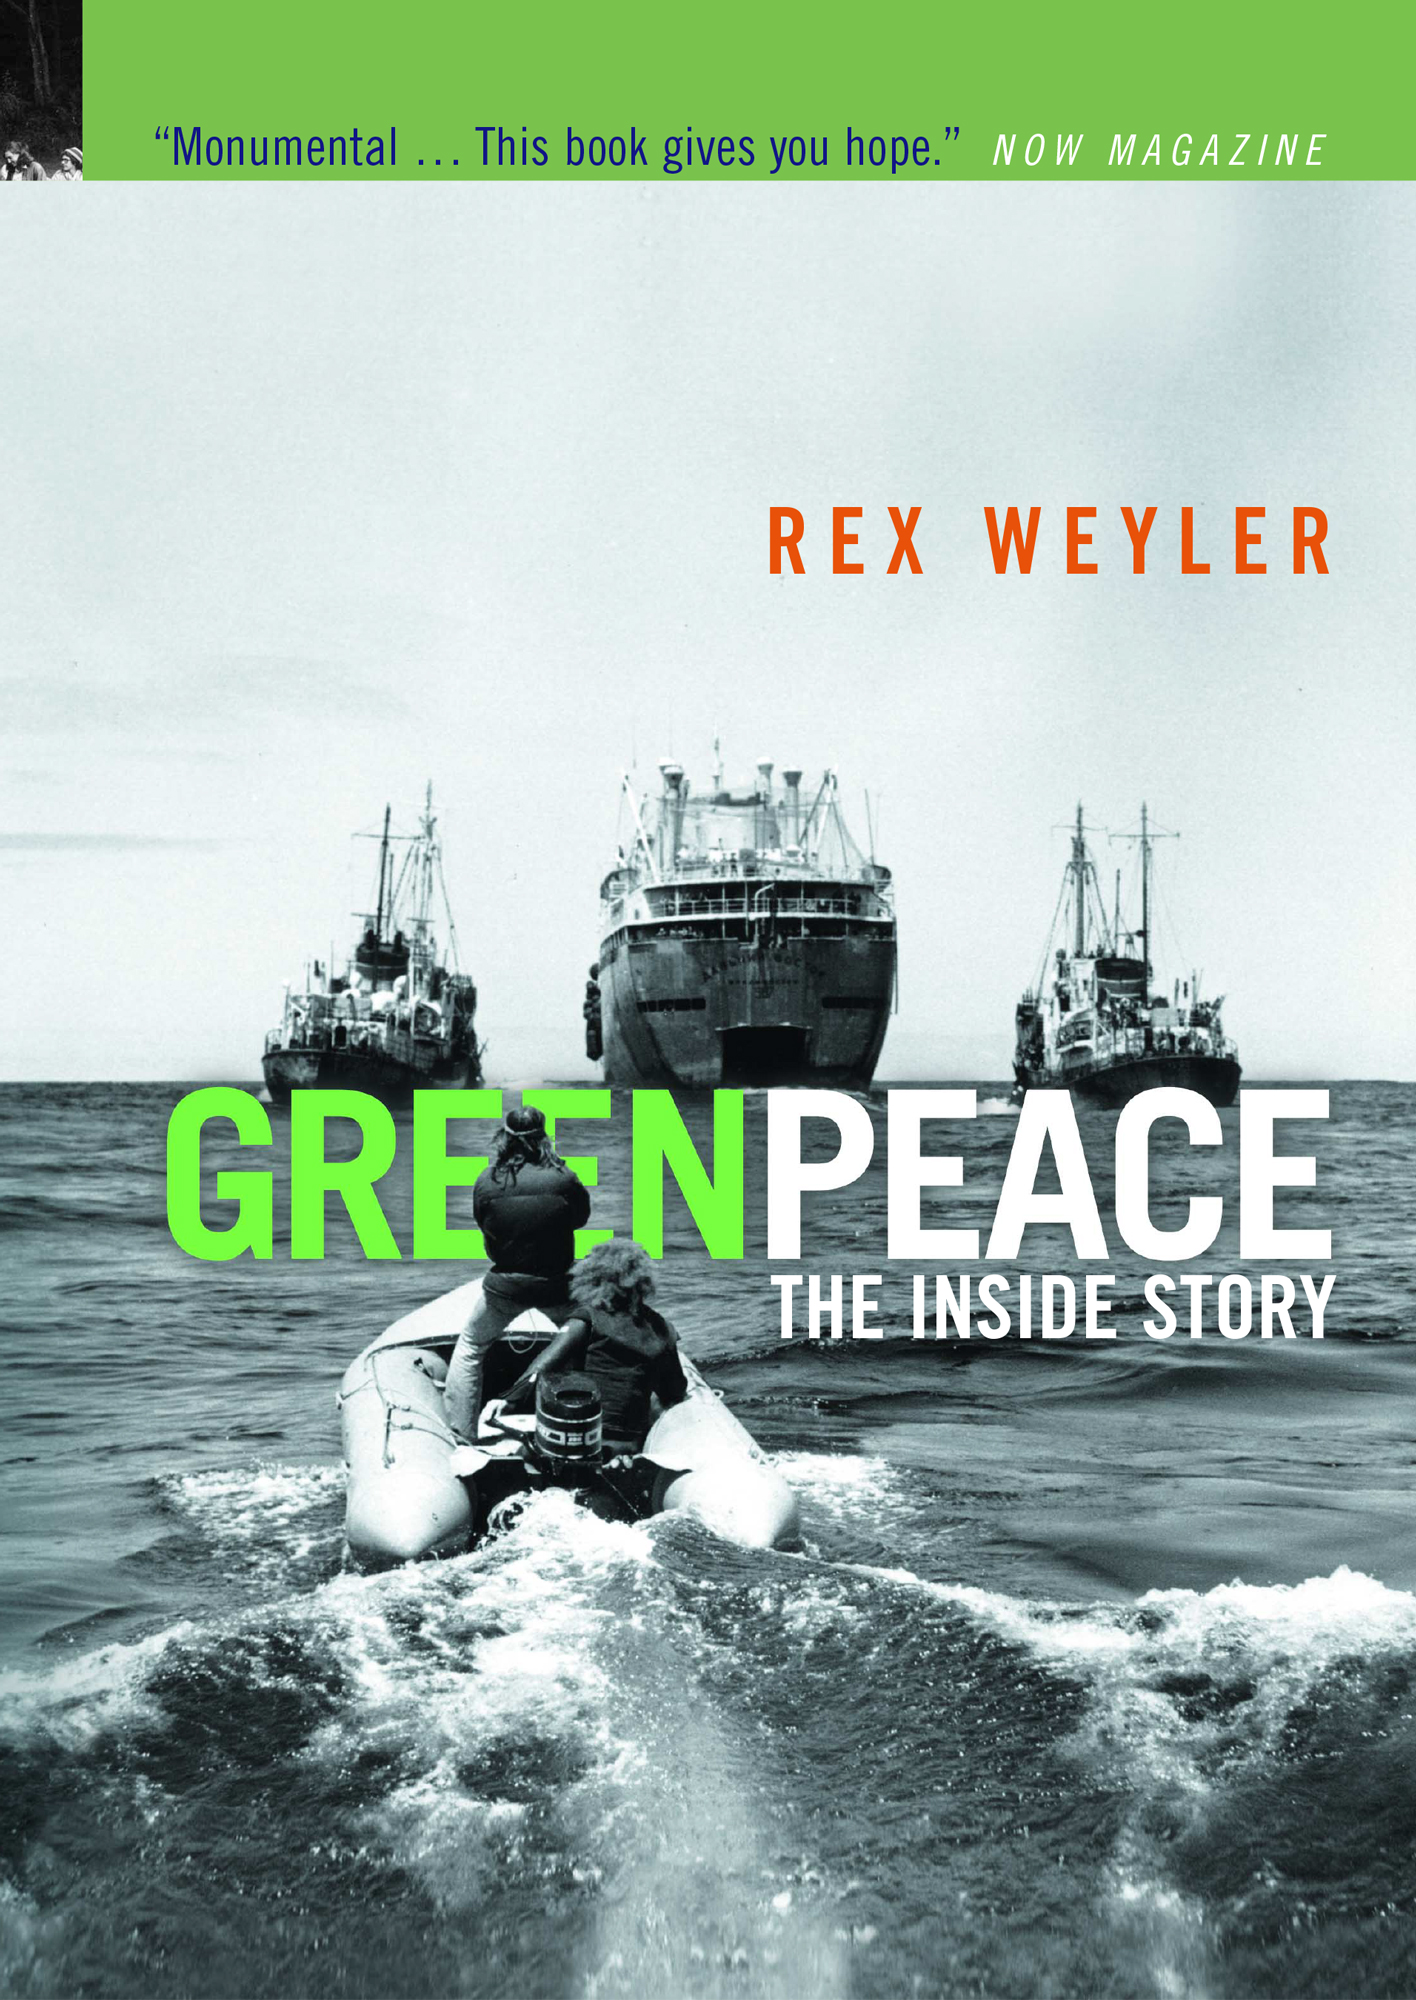 Greenpeace: The Inside Story - Greenpeace: The Inside Story recounts the definitive history of the world's most renowned ecology action group. Beginning in the 1960s, the story follows our small cadre of peace activists, as we set out to start an